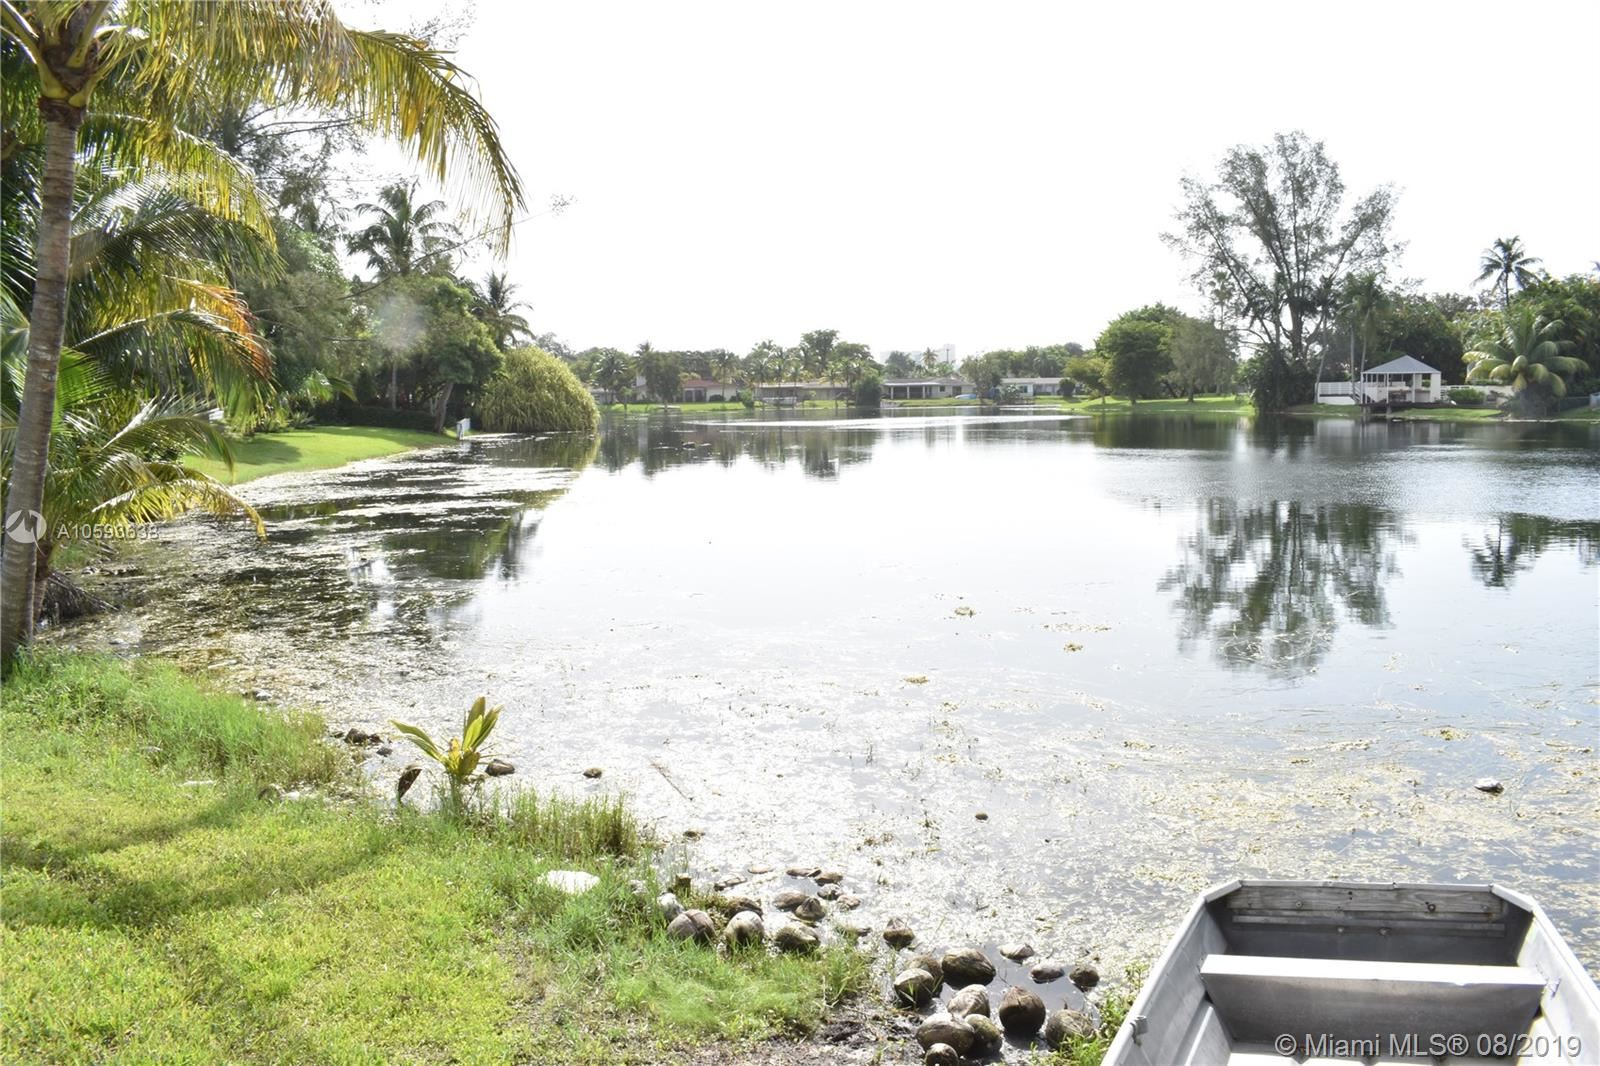 21431 NE Highland Lakes Blvd, Miami, FL 33179 - MLS#: A10593638